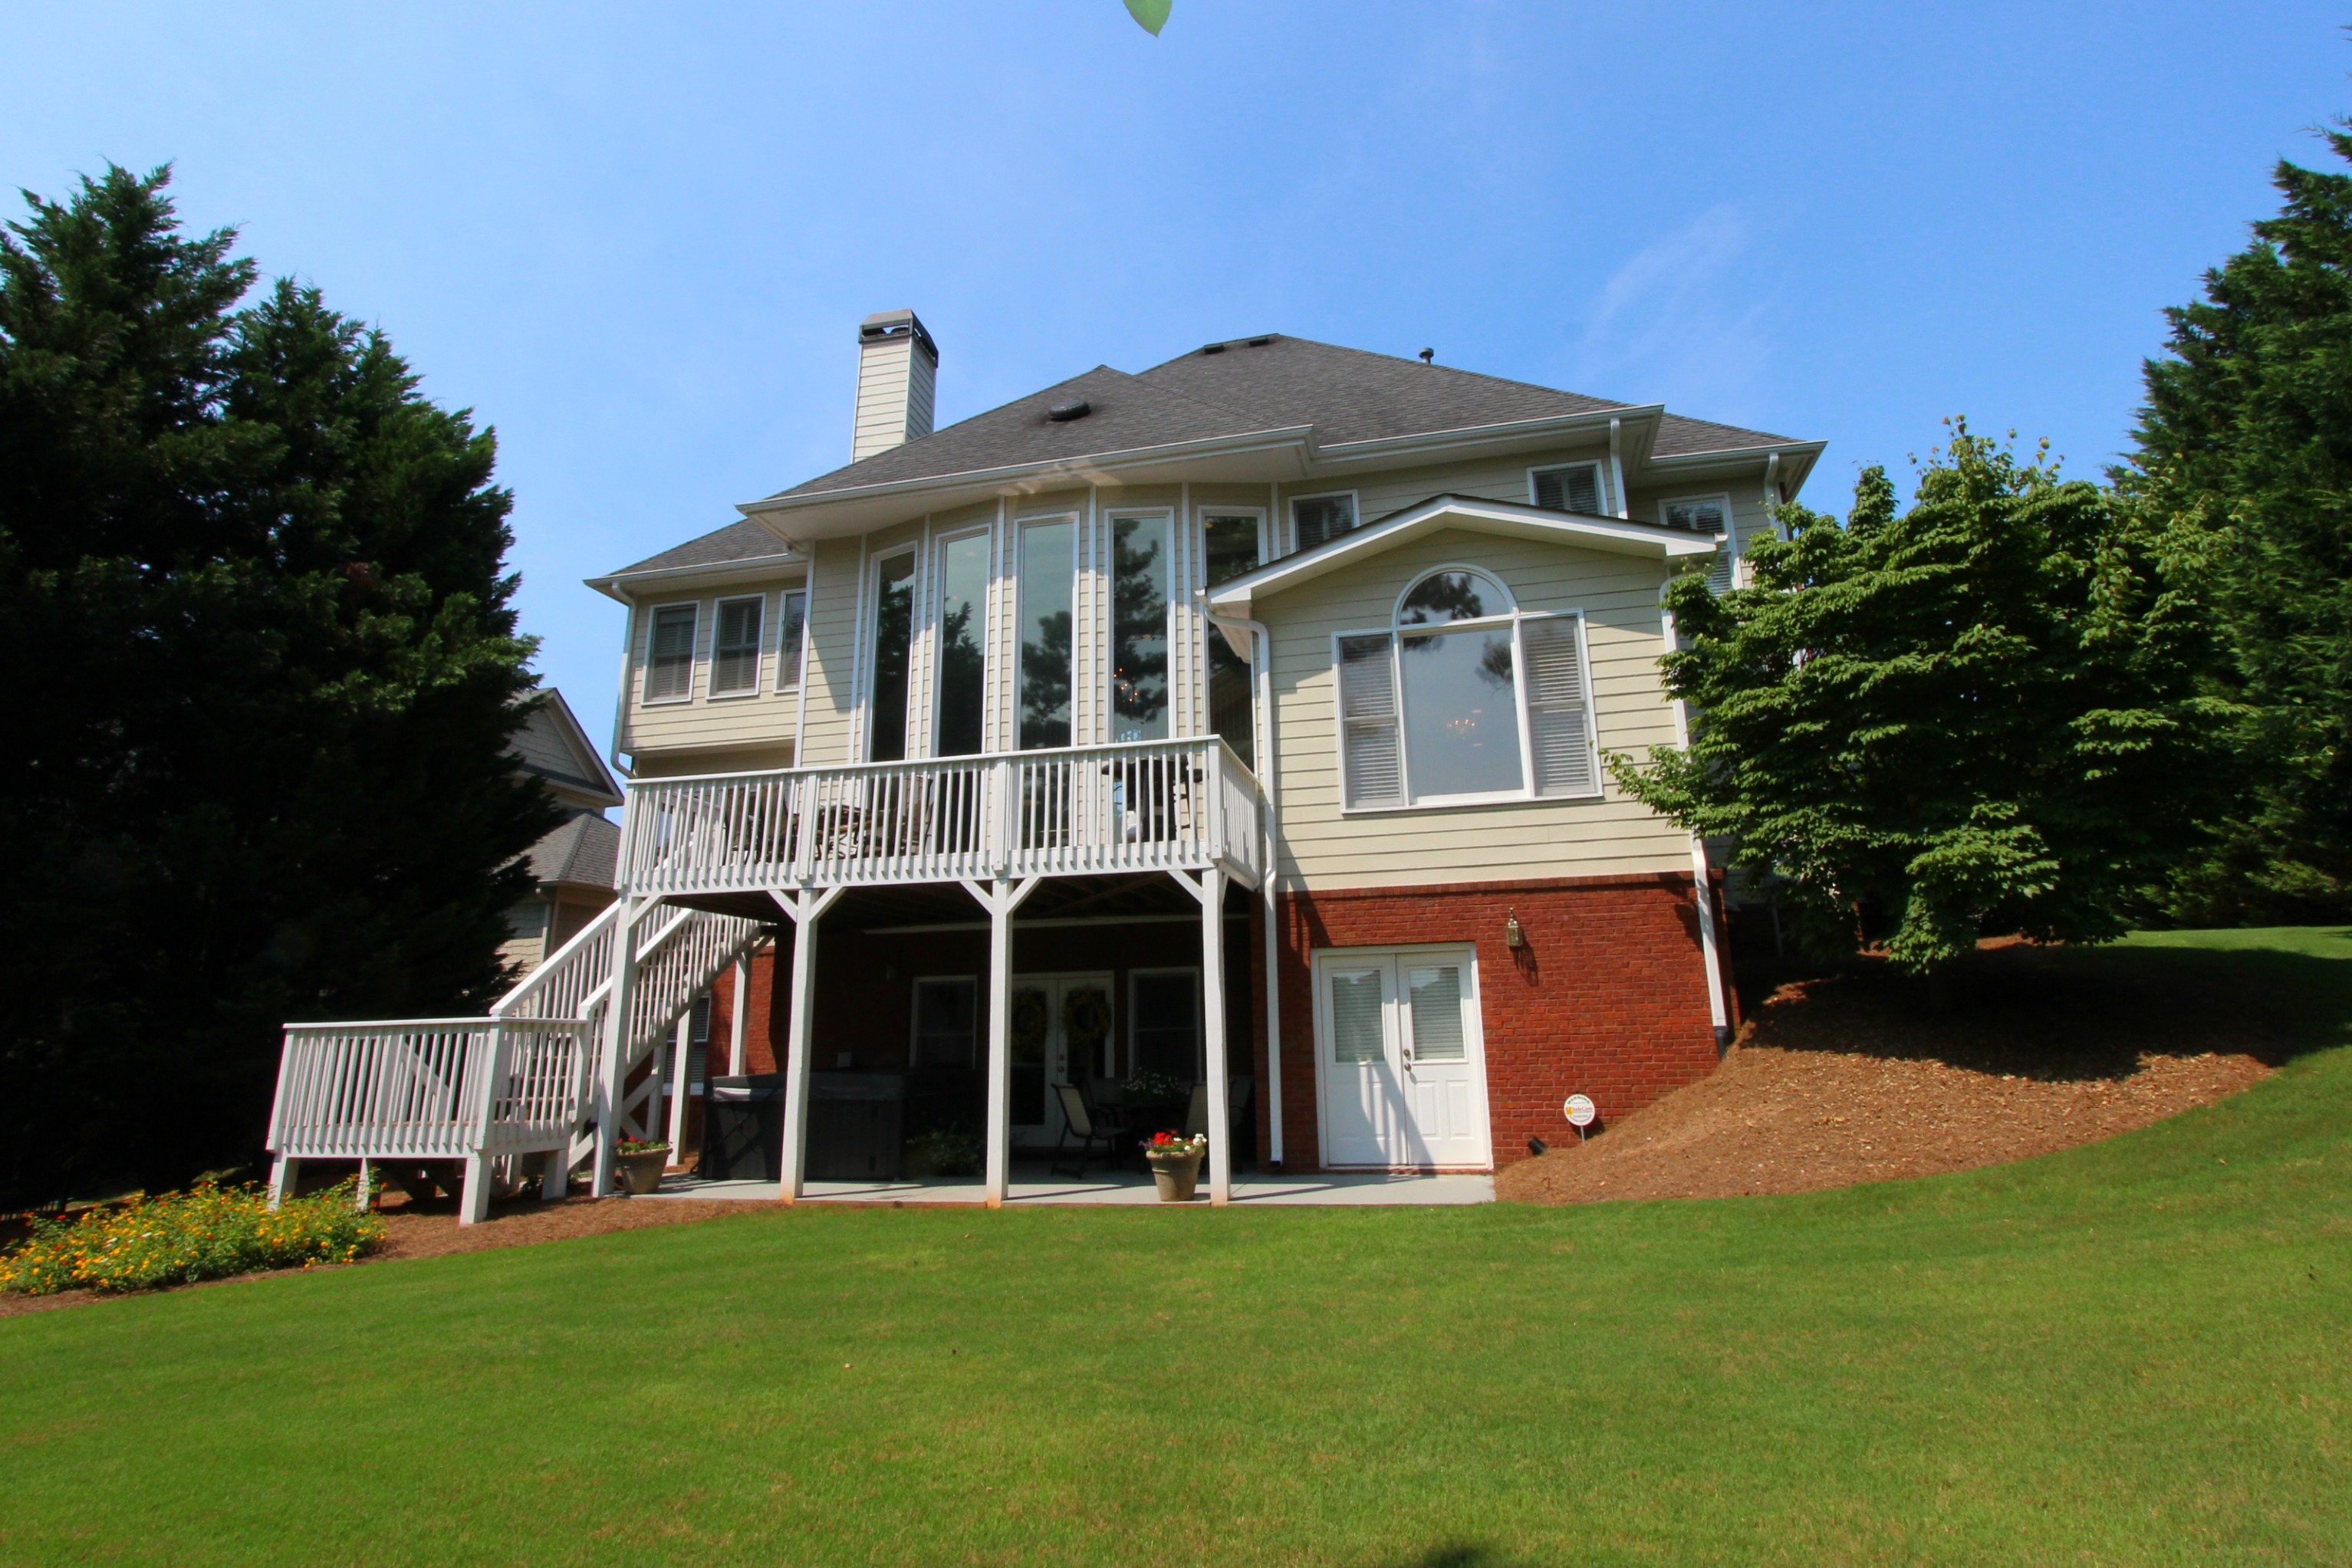 915-Golf-View-Court-Dacula-GA-30019-home-for-sale